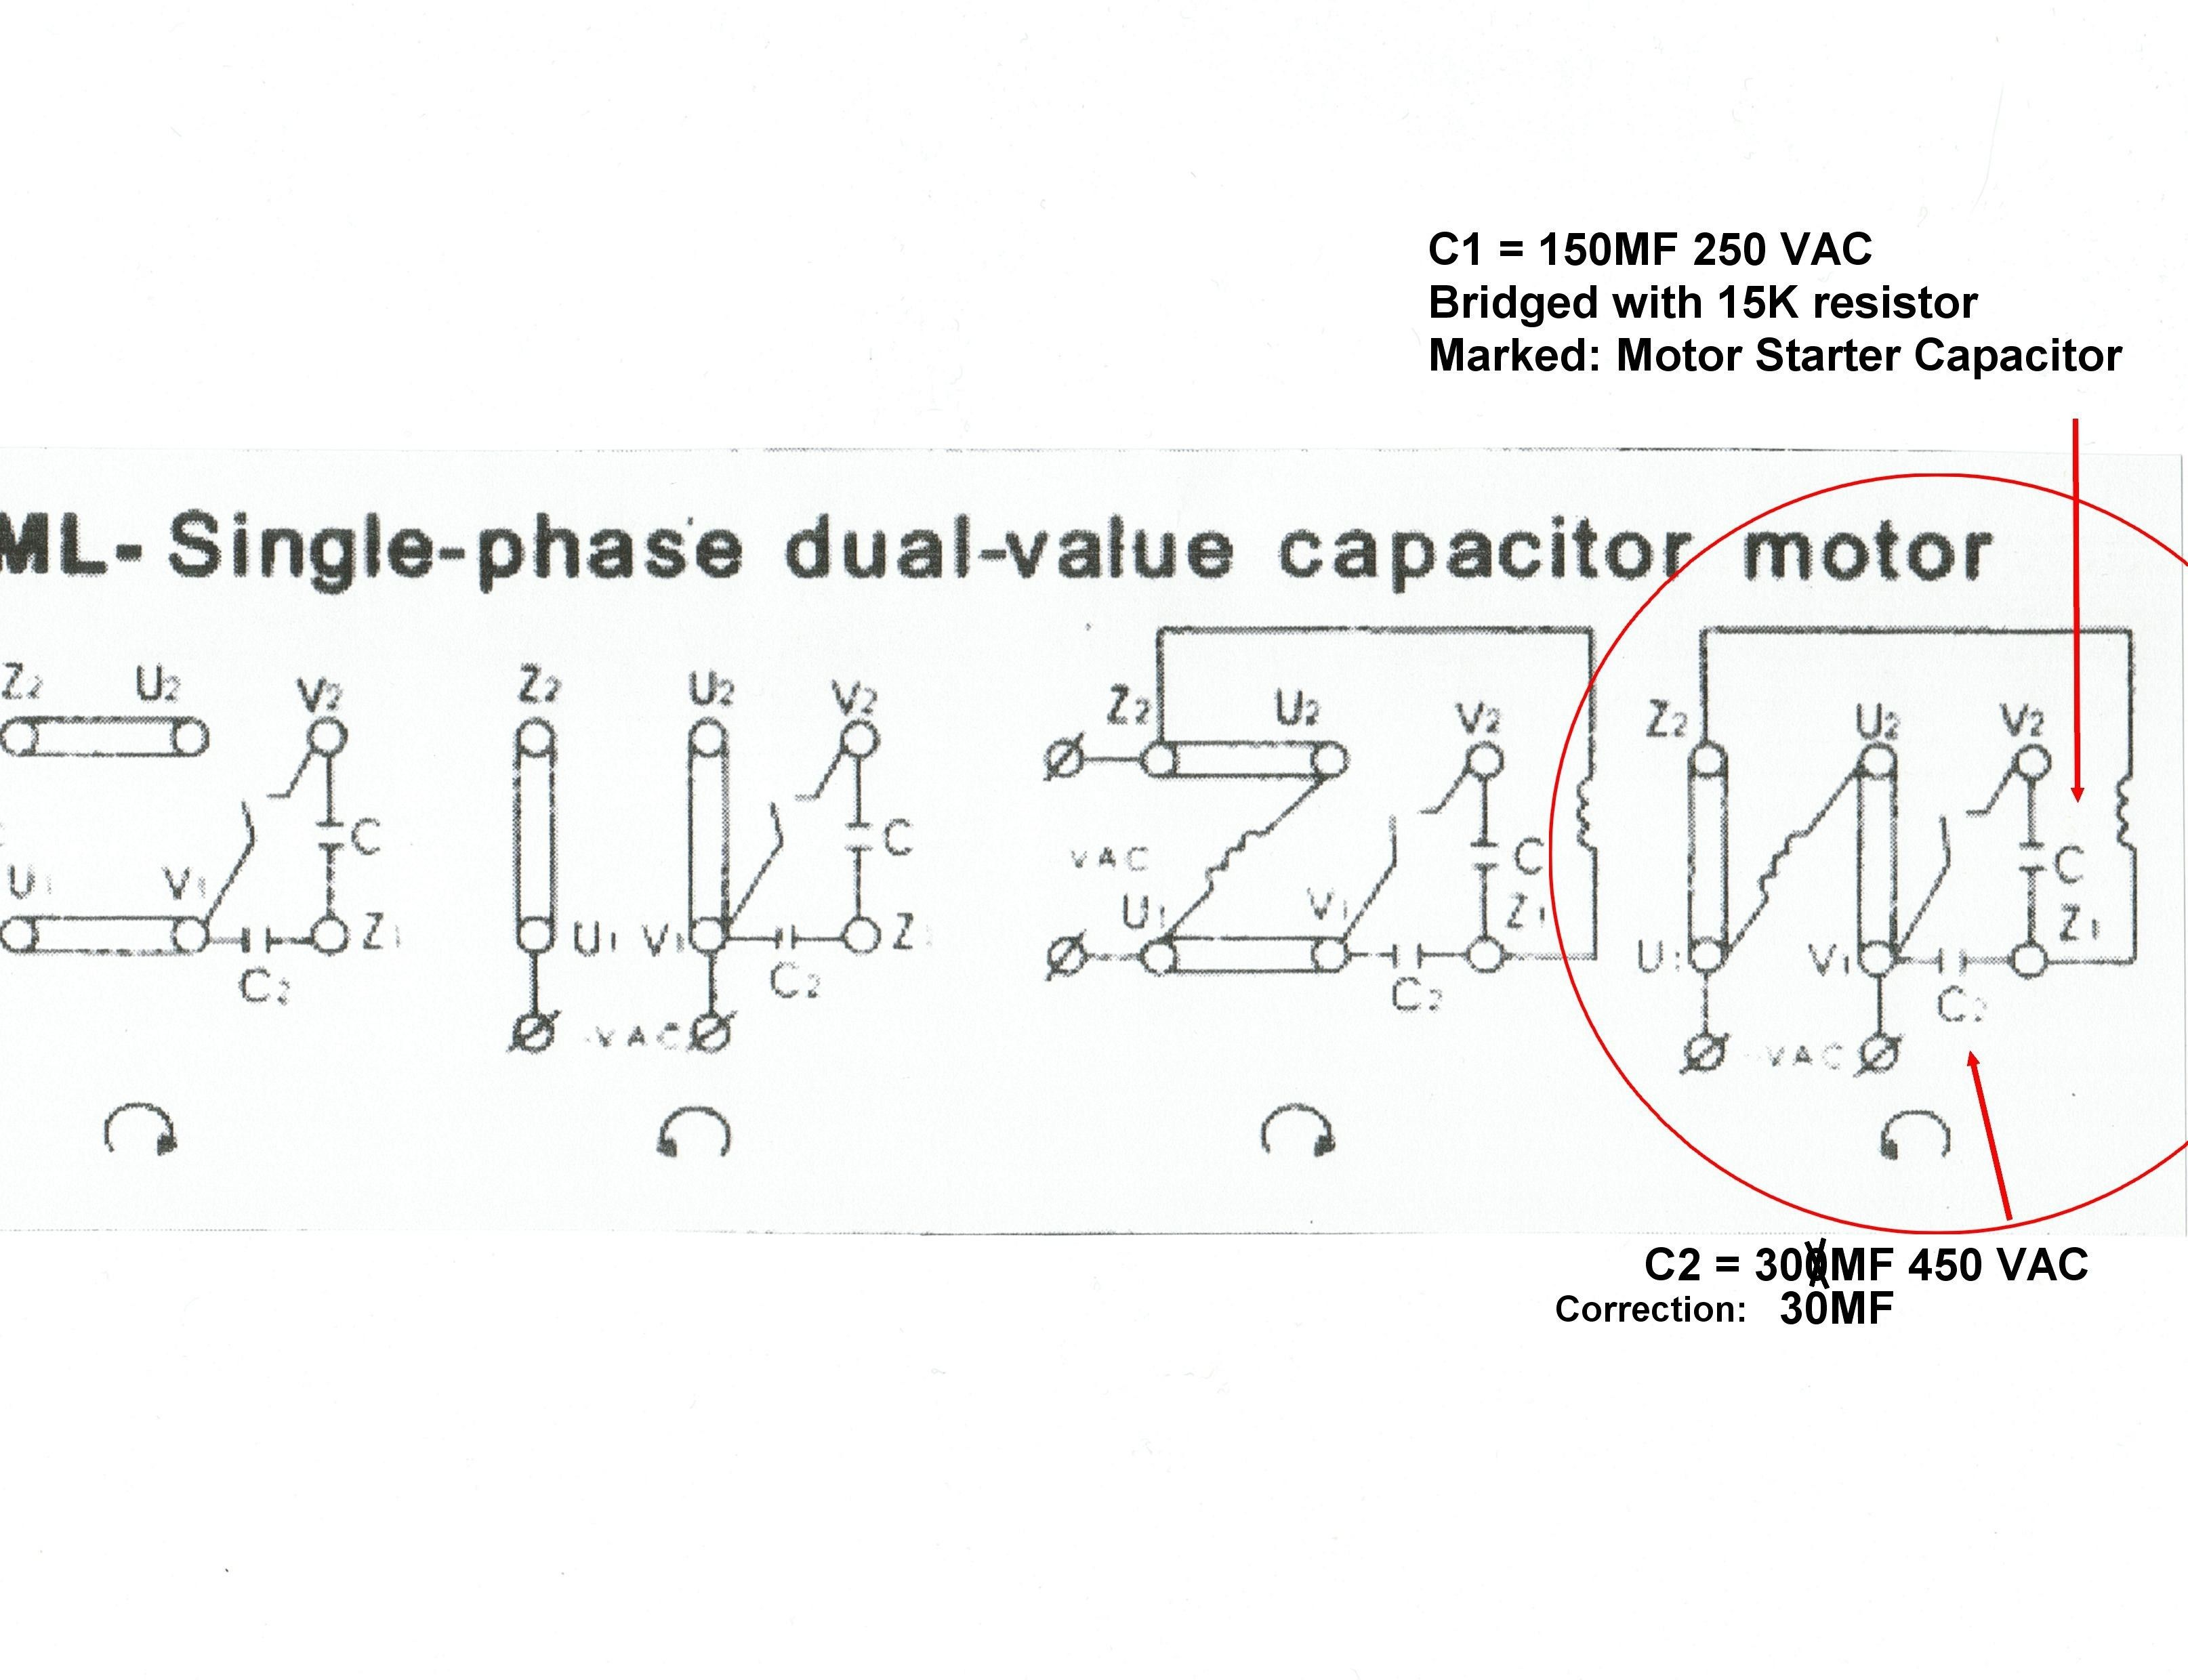 hight resolution of 6 wire motor diagram wiring diagram operations 6 wire wiring diagram 6 lead 2 capacitor motor